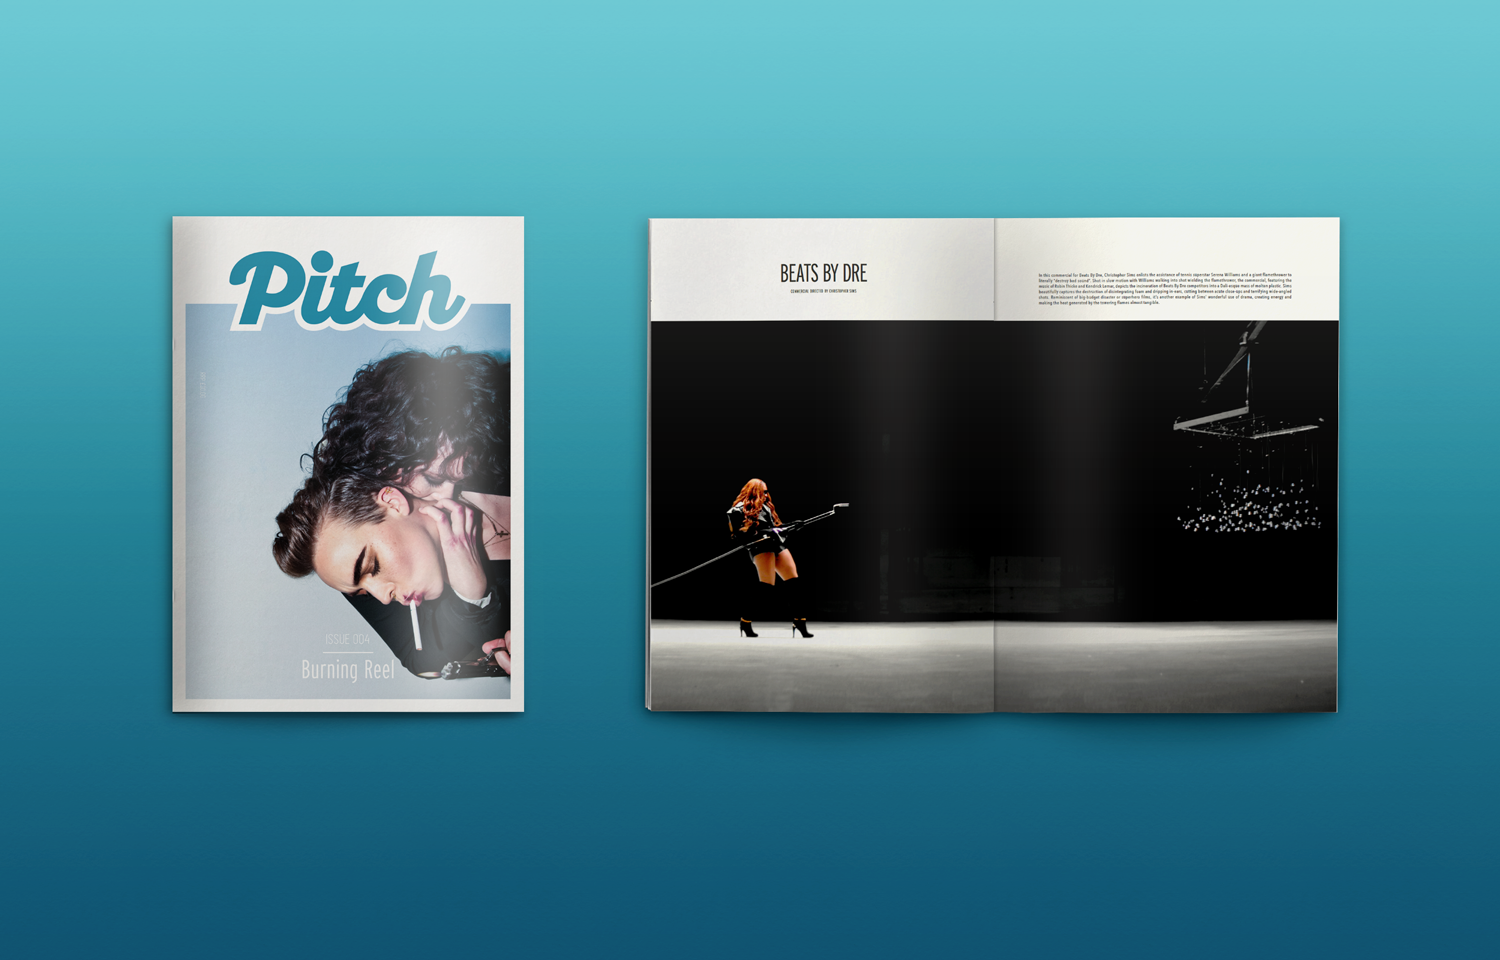 The Pitch Fanzine font cover and inside spread for issue 04.